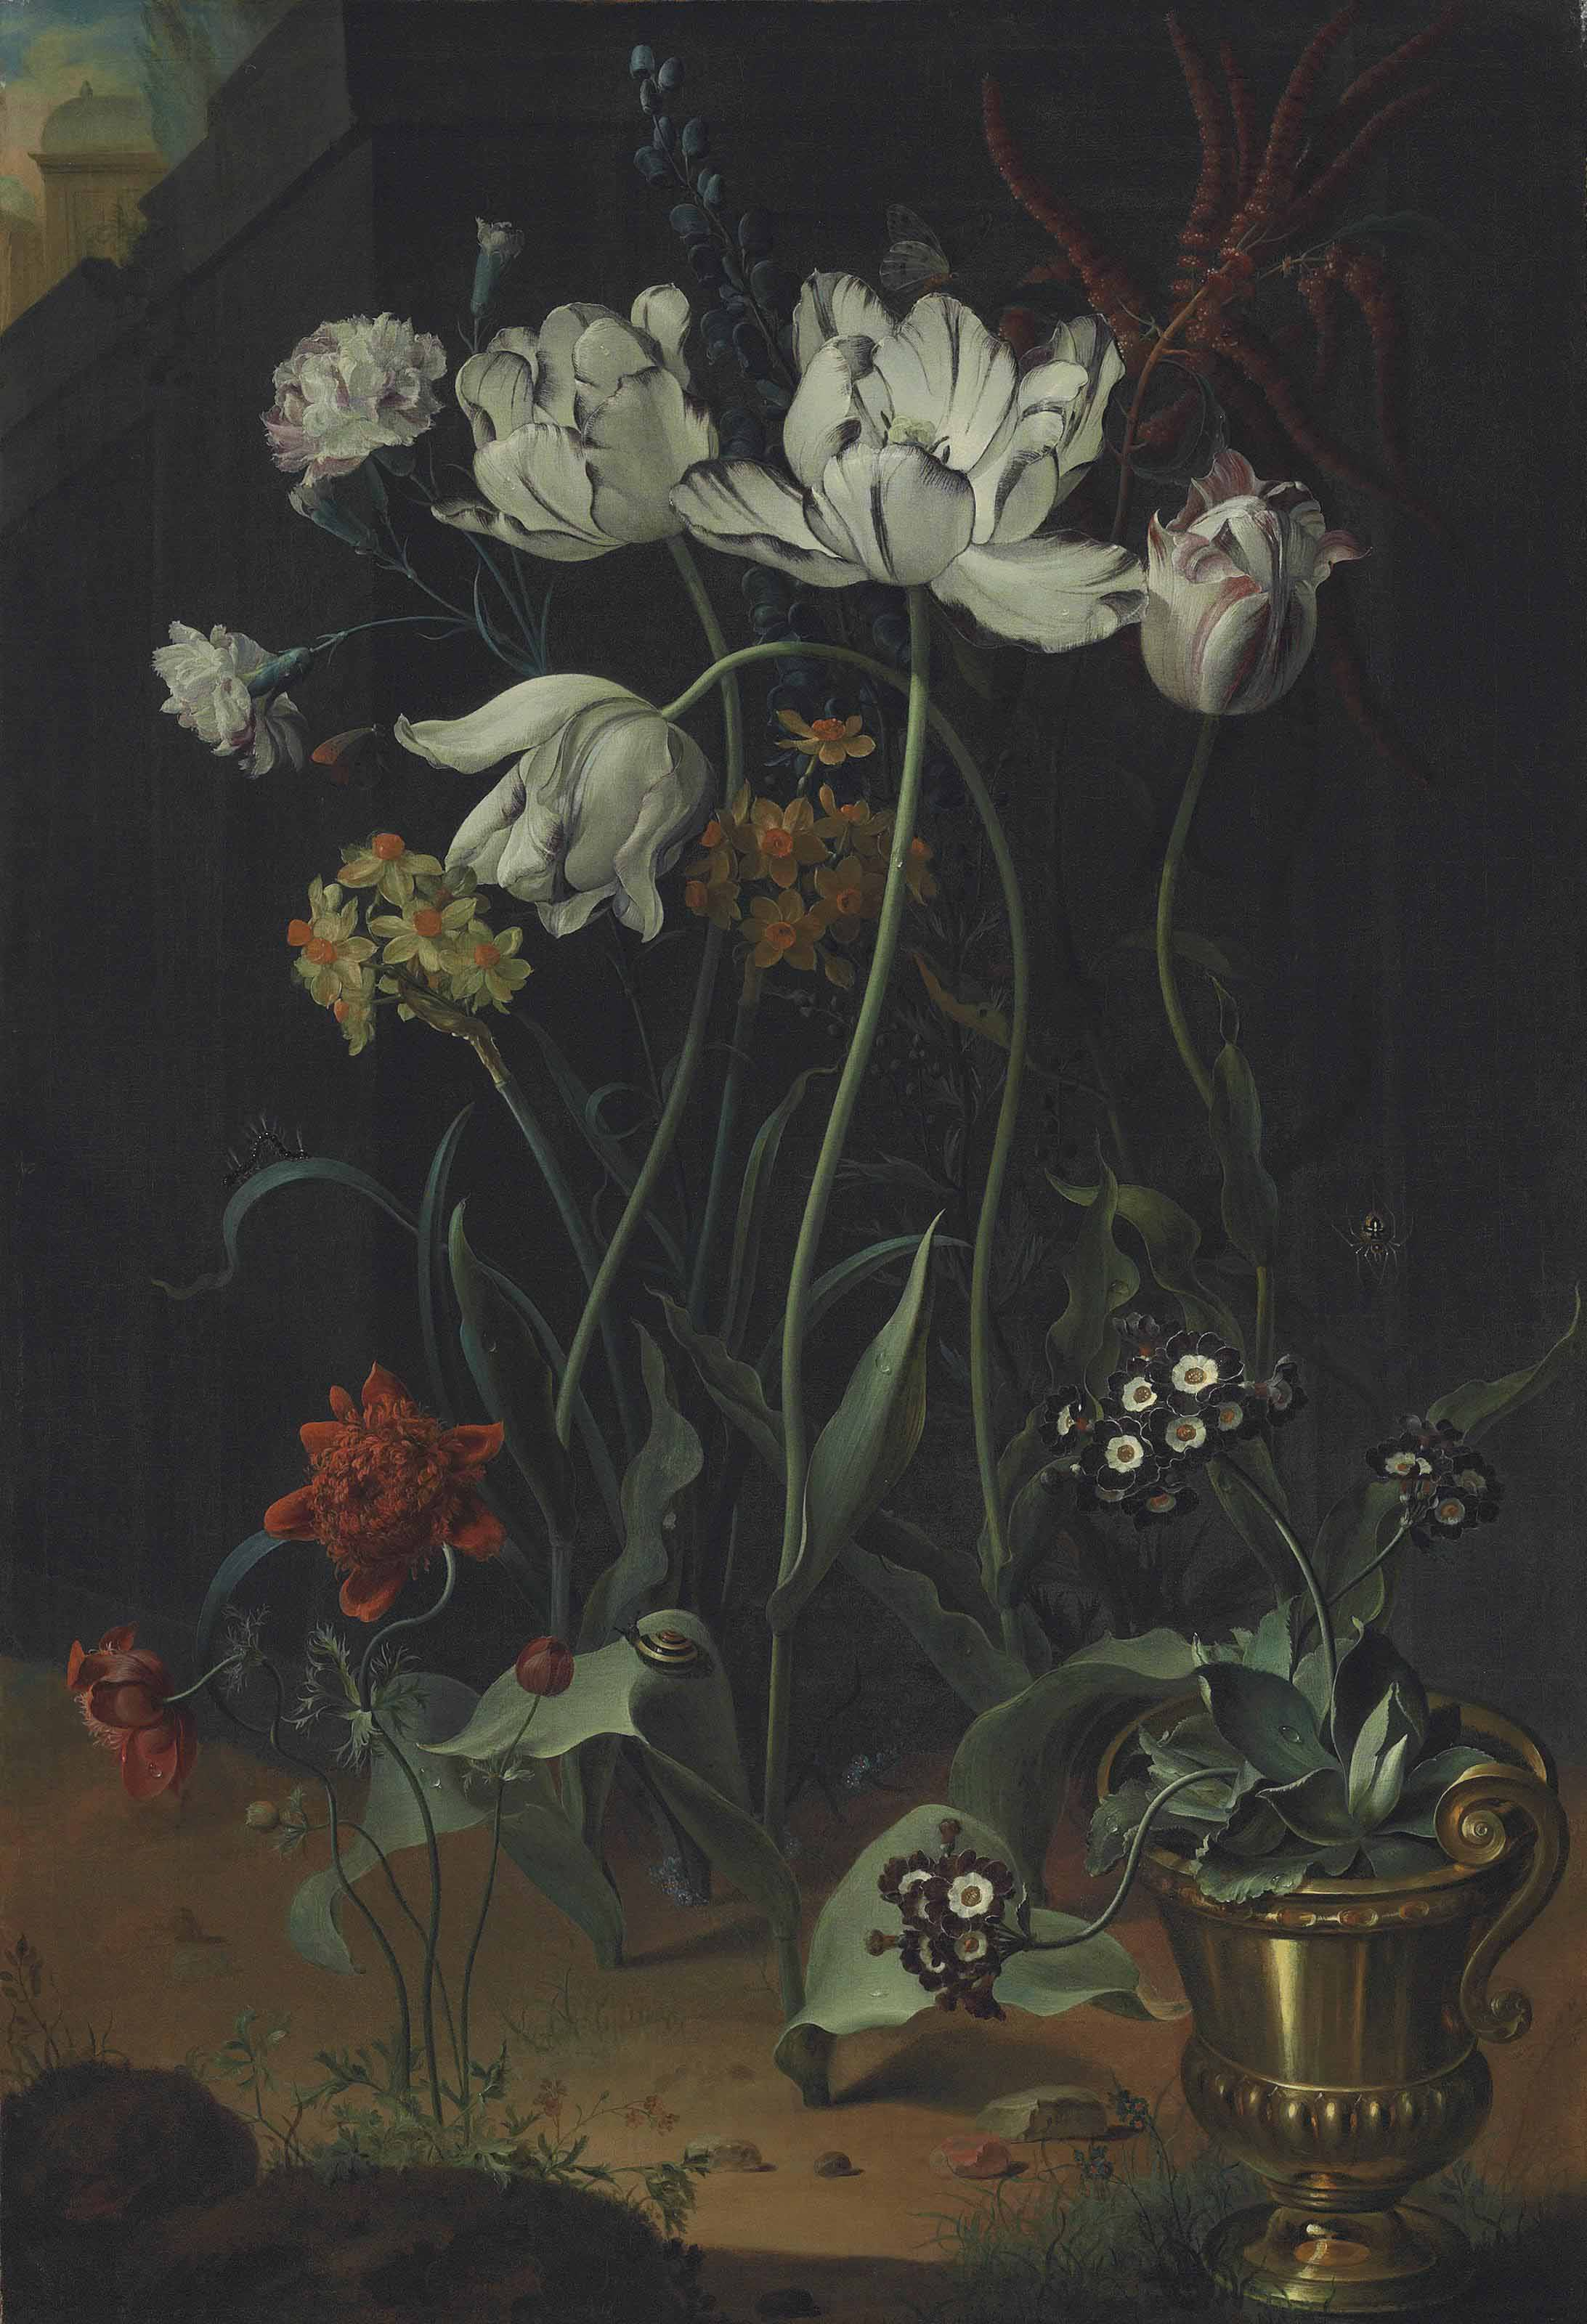 Parrot tulips, narcissi, carnations and other flowers, with primroses in a bronze urn